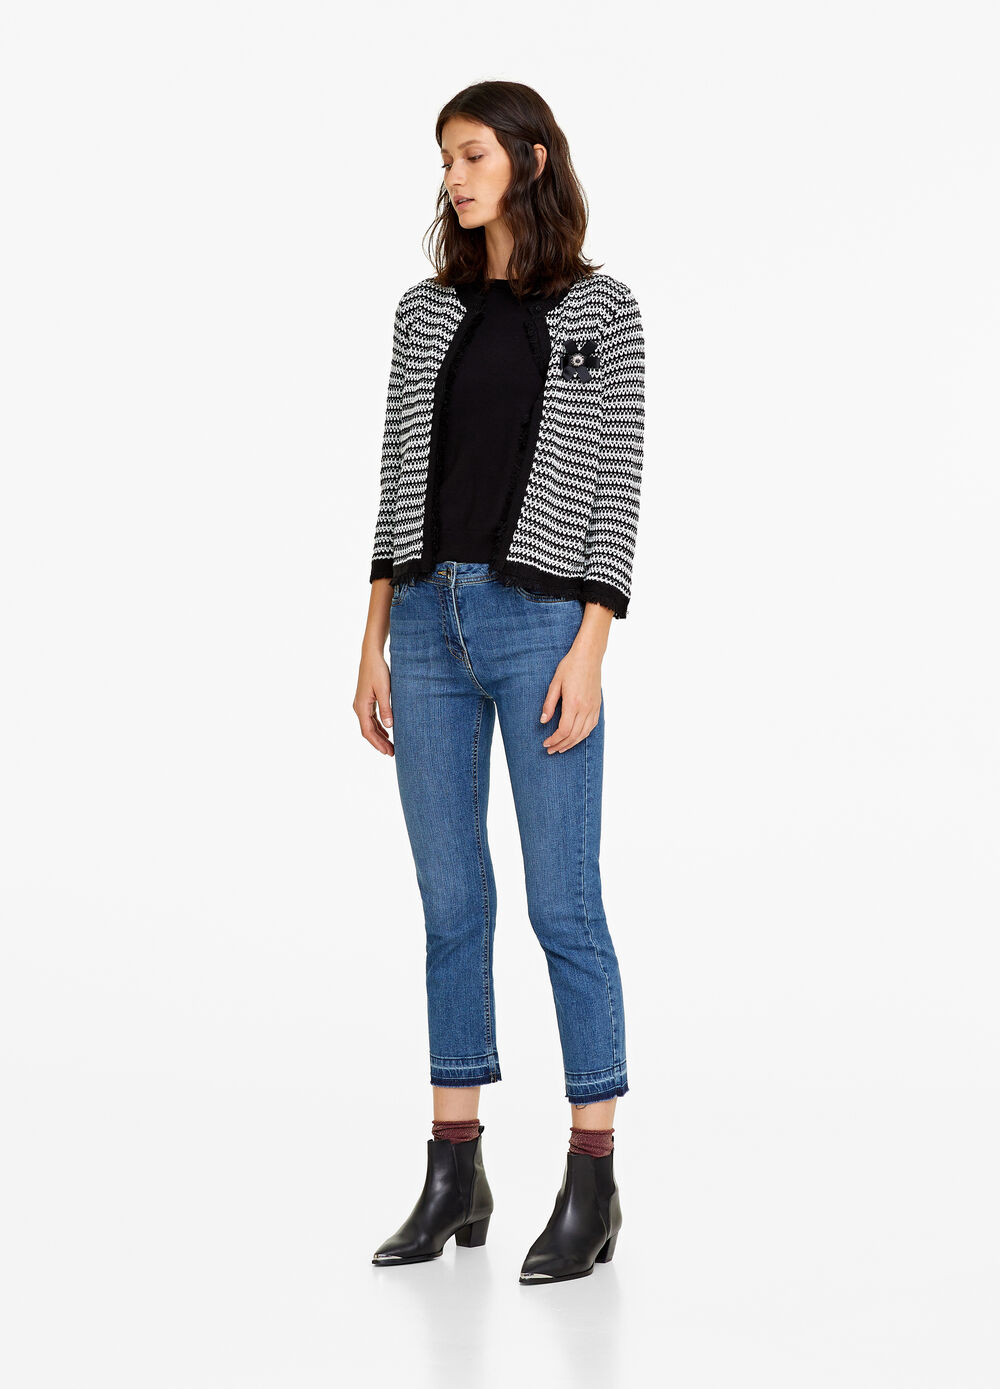 Striped knitted cardigan jacket